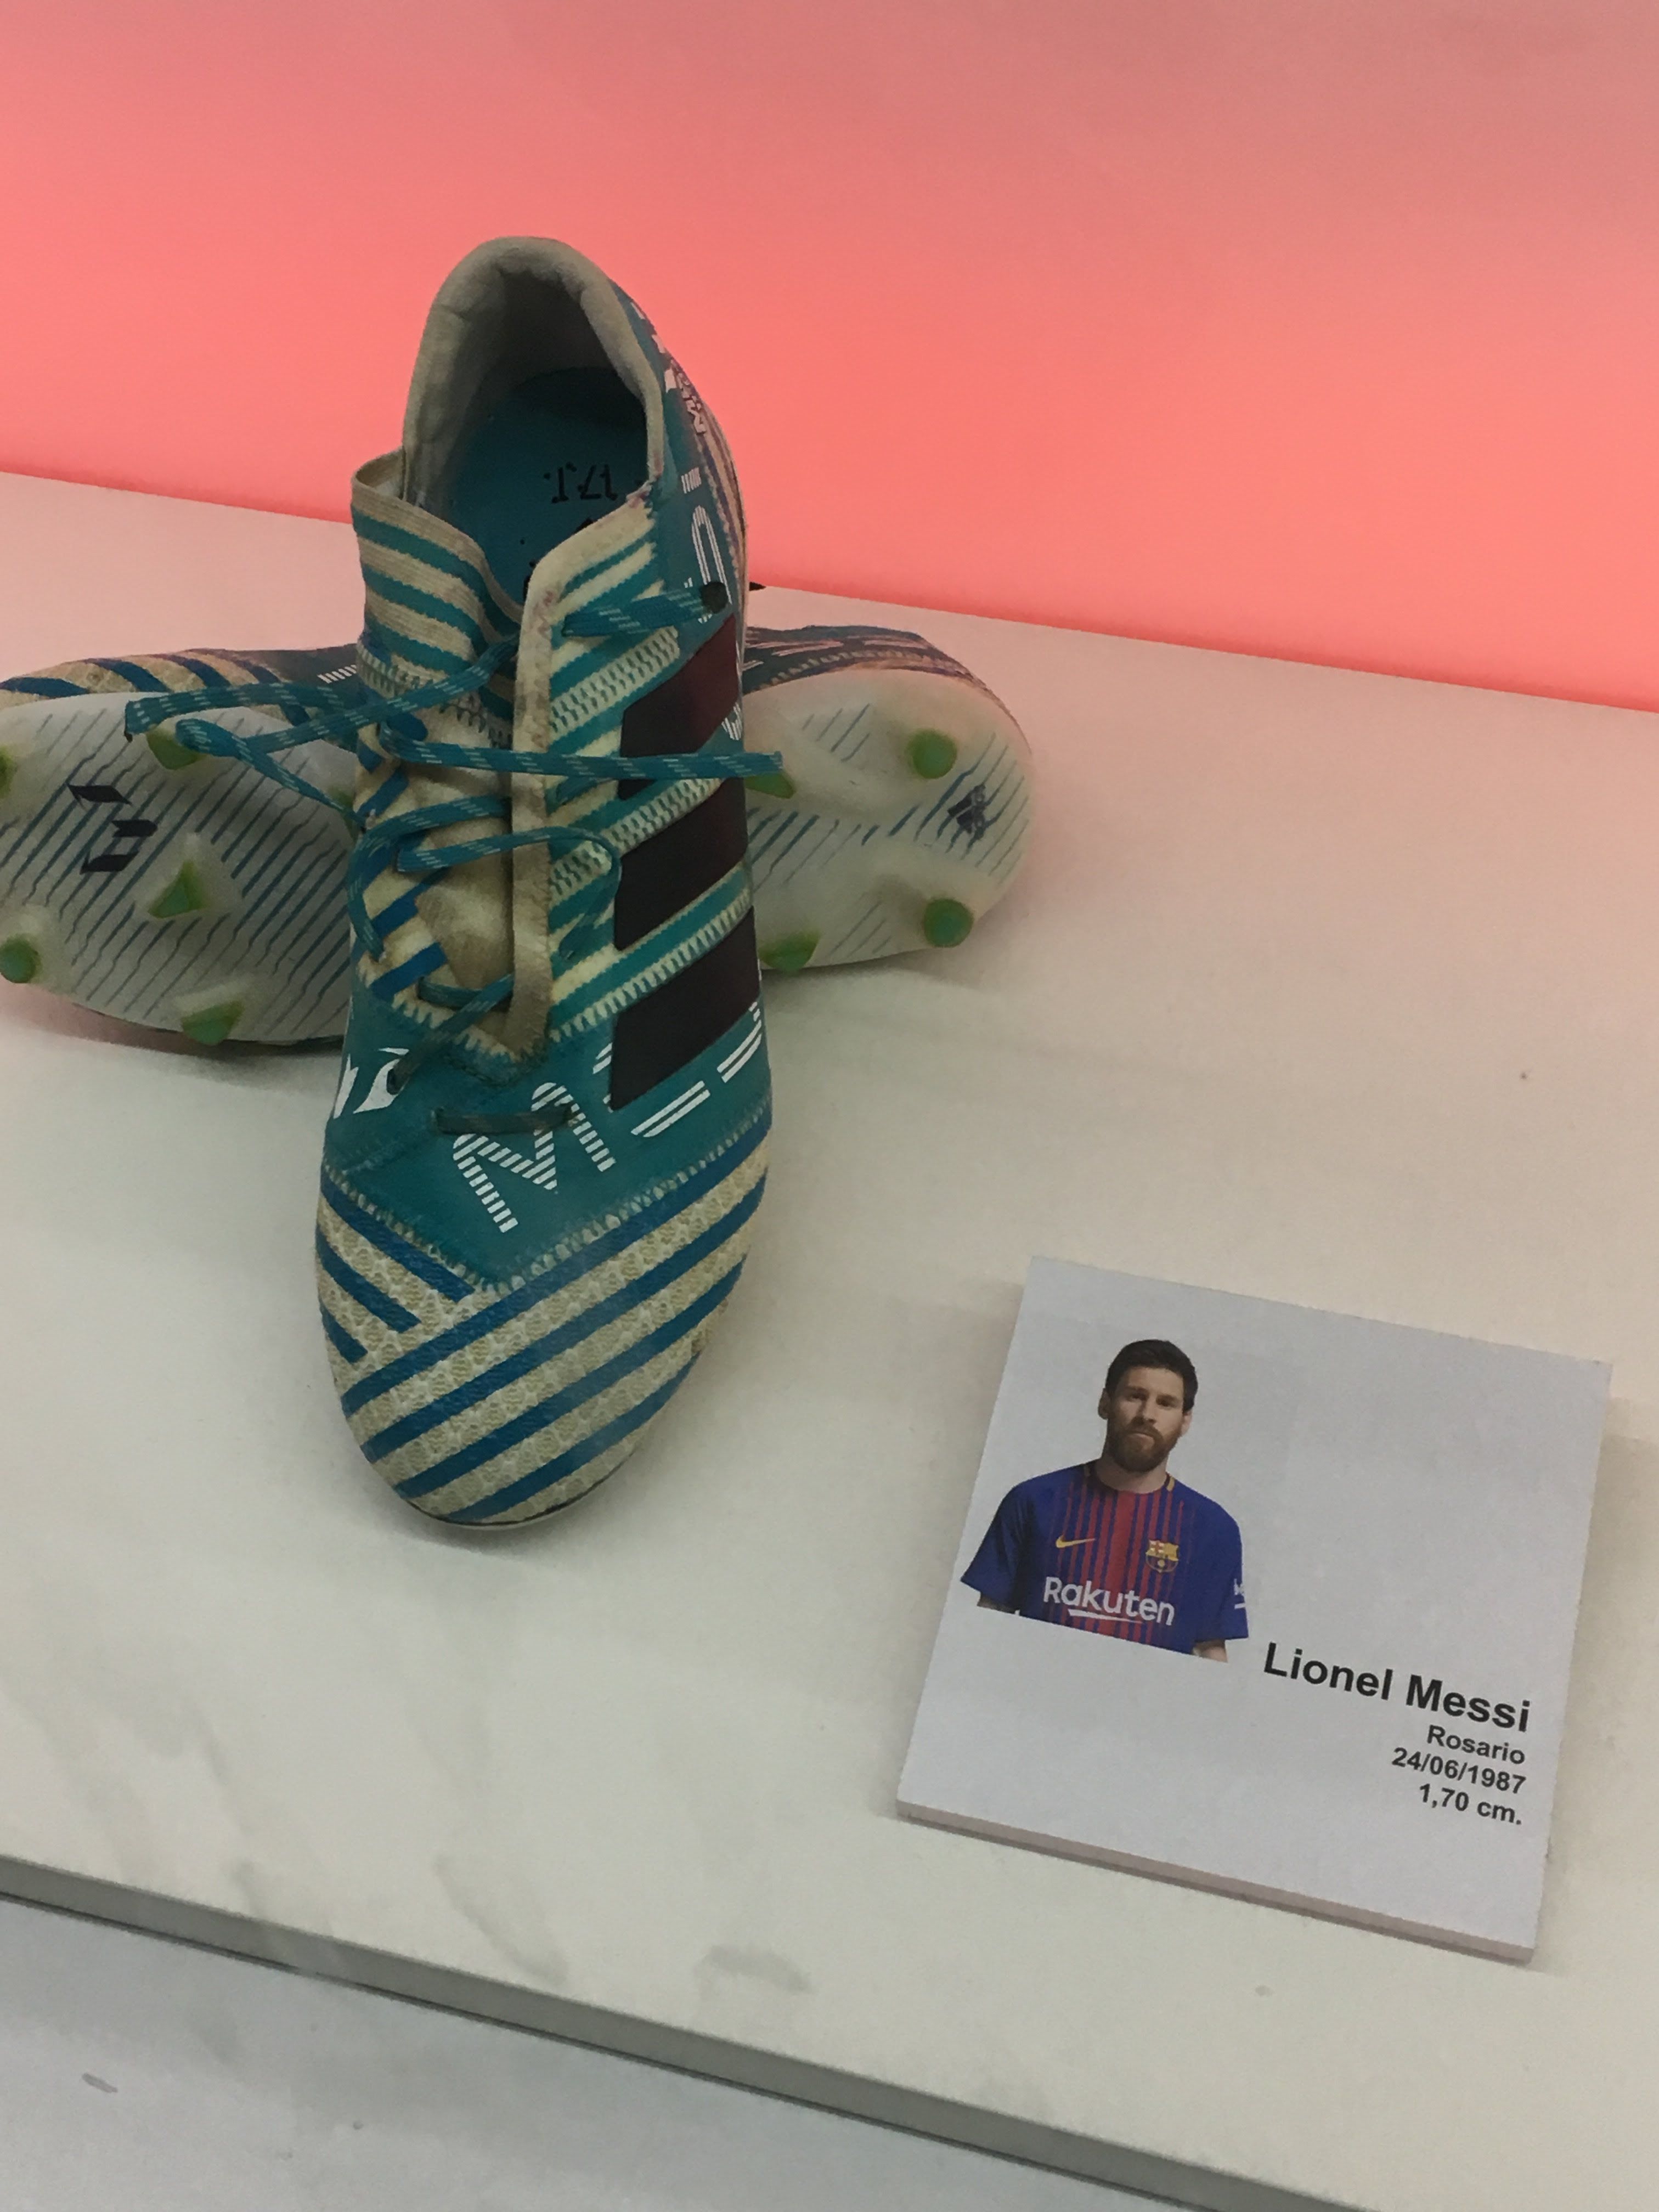 Messi's Cleats